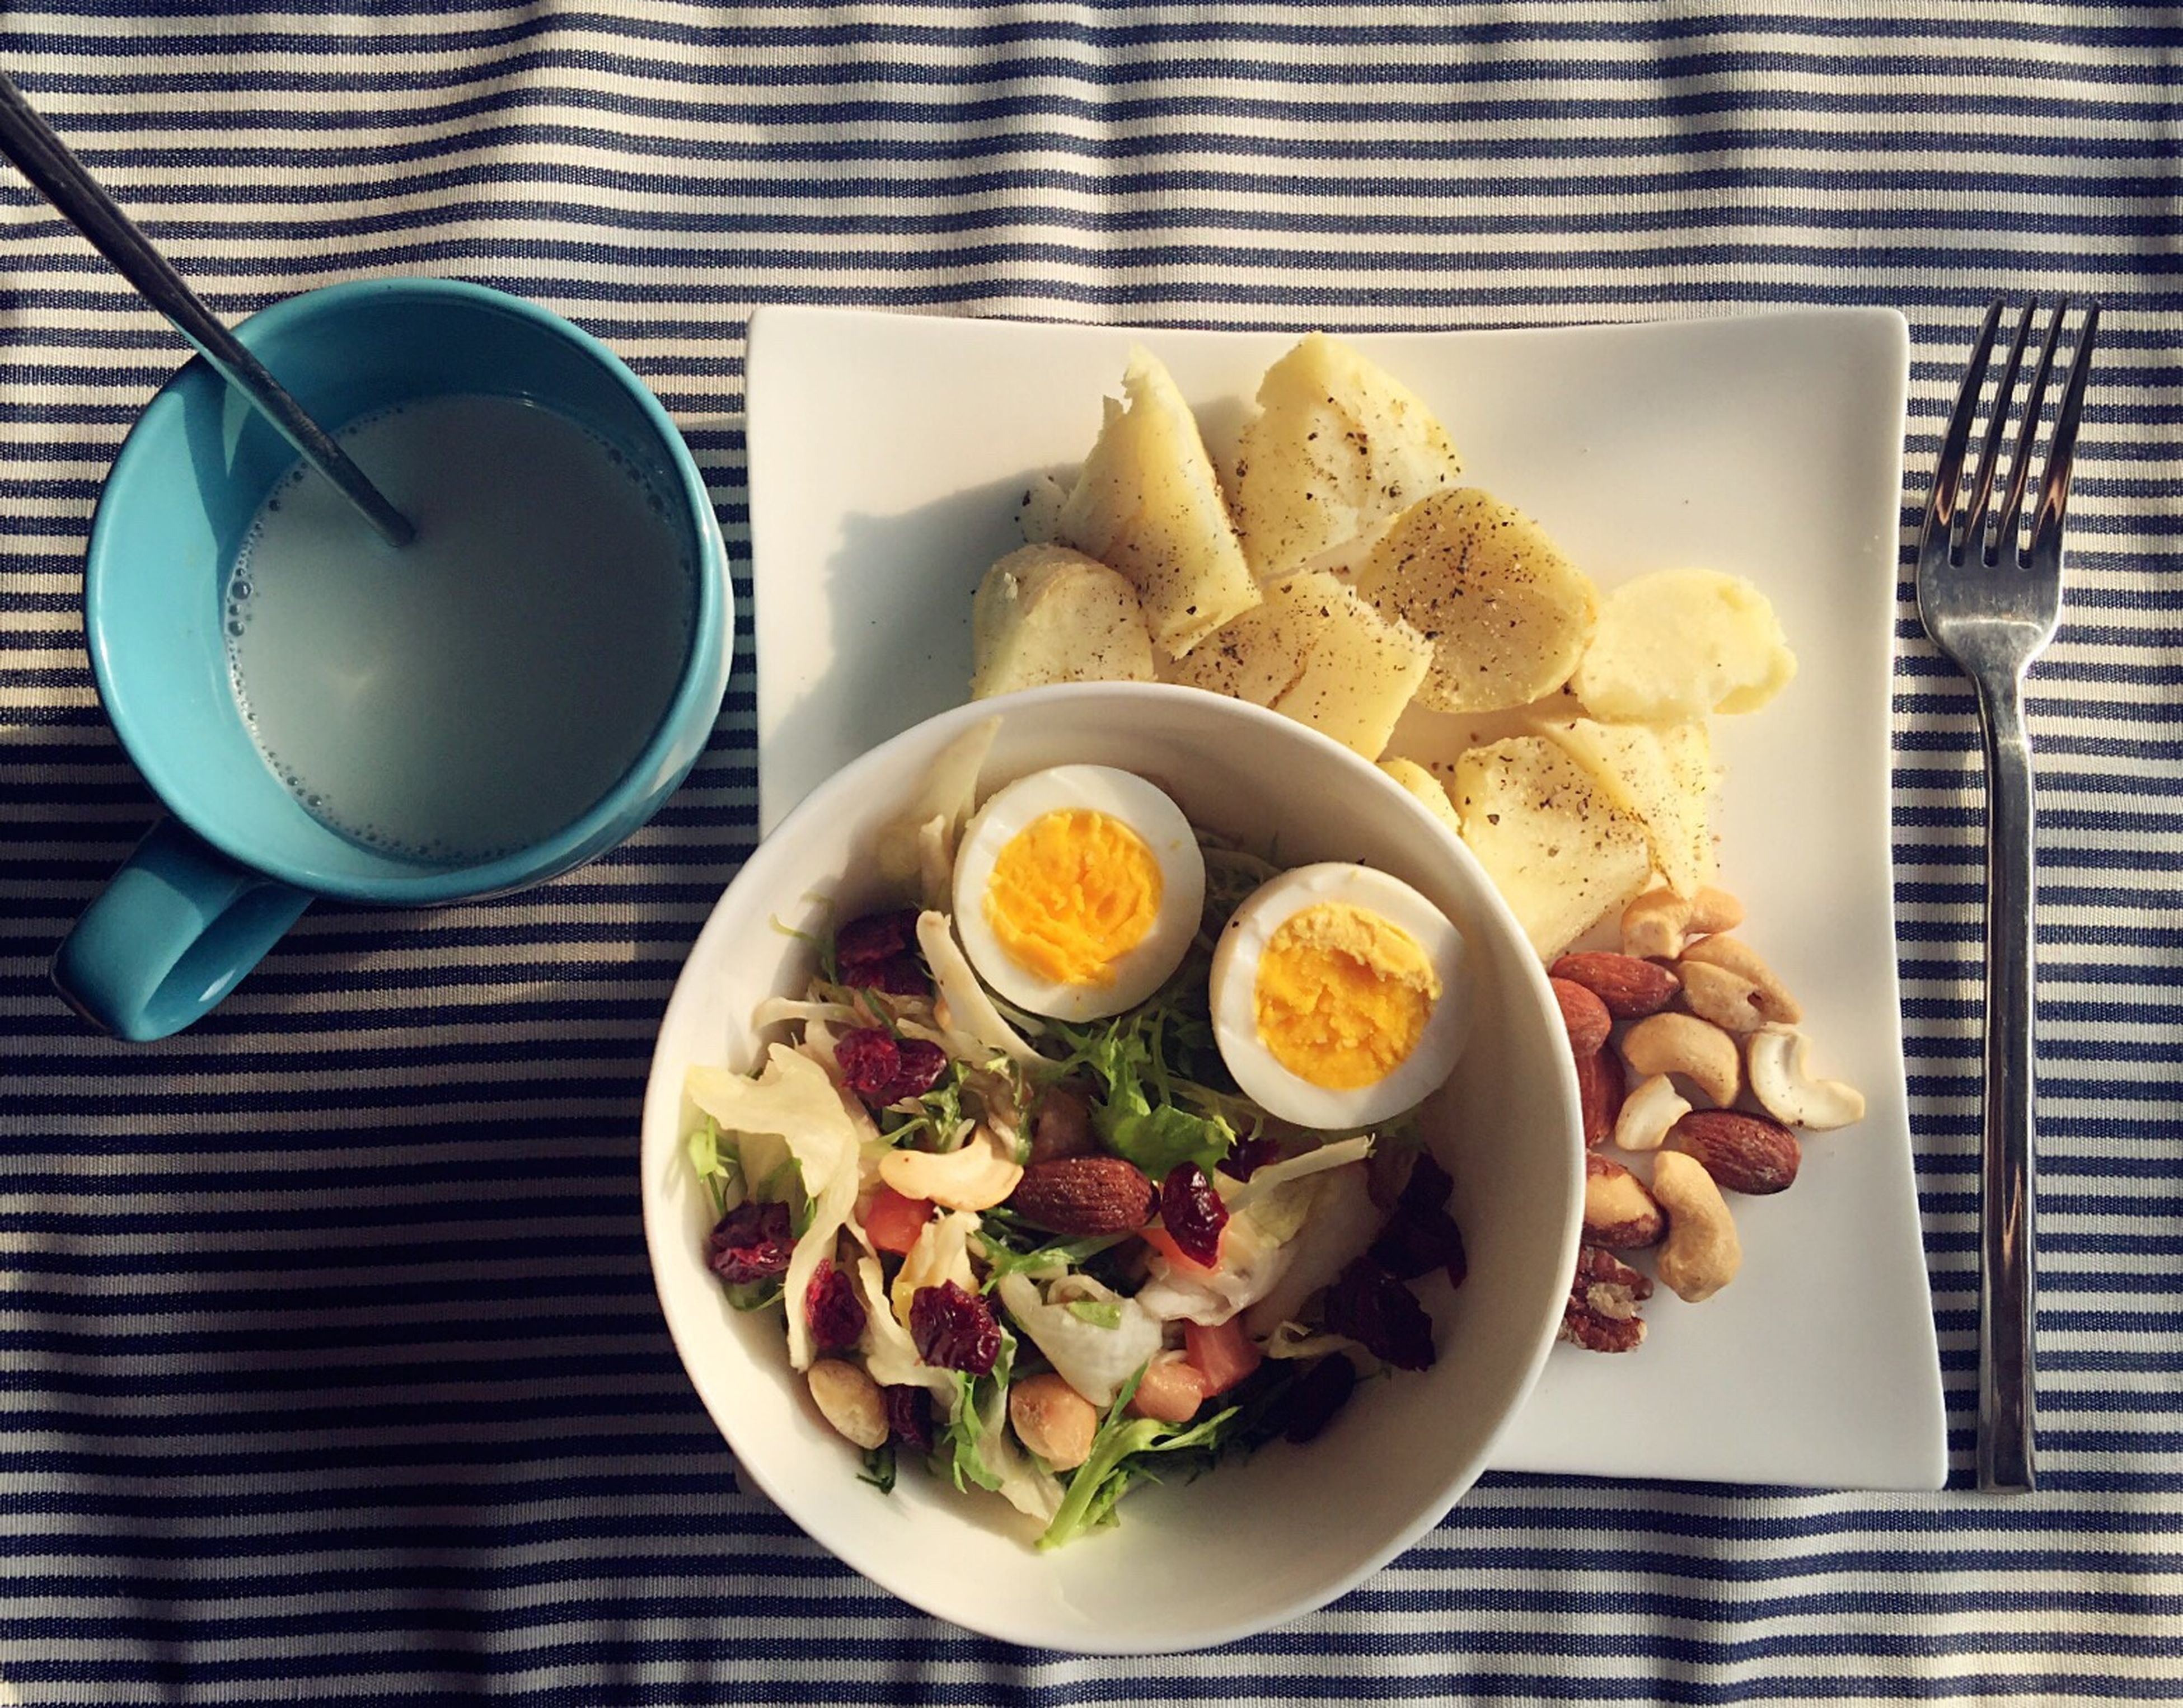 food and drink, food, freshness, plate, table, indoors, ready-to-eat, healthy eating, still life, bowl, serving size, meal, high angle view, directly above, fork, spoon, drink, served, breakfast, salad